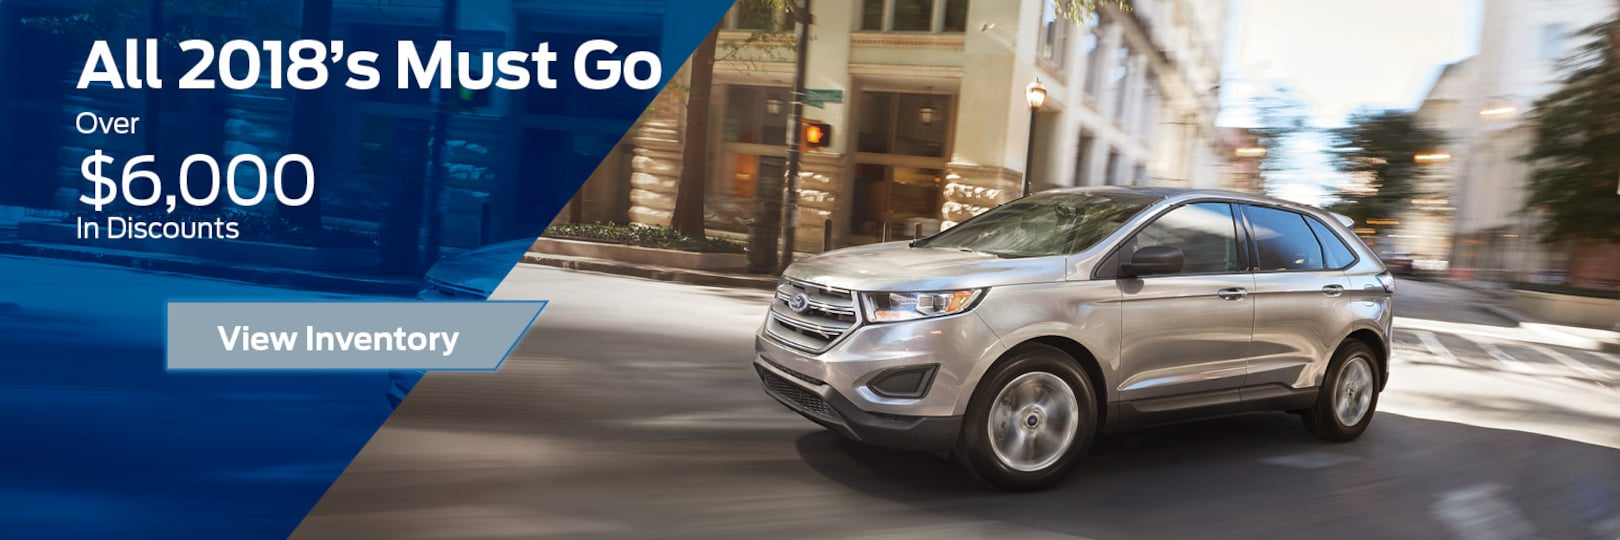 Thunder Basin Ford >> Thunder Basin Ford | Ford Dealership in Gillette WY